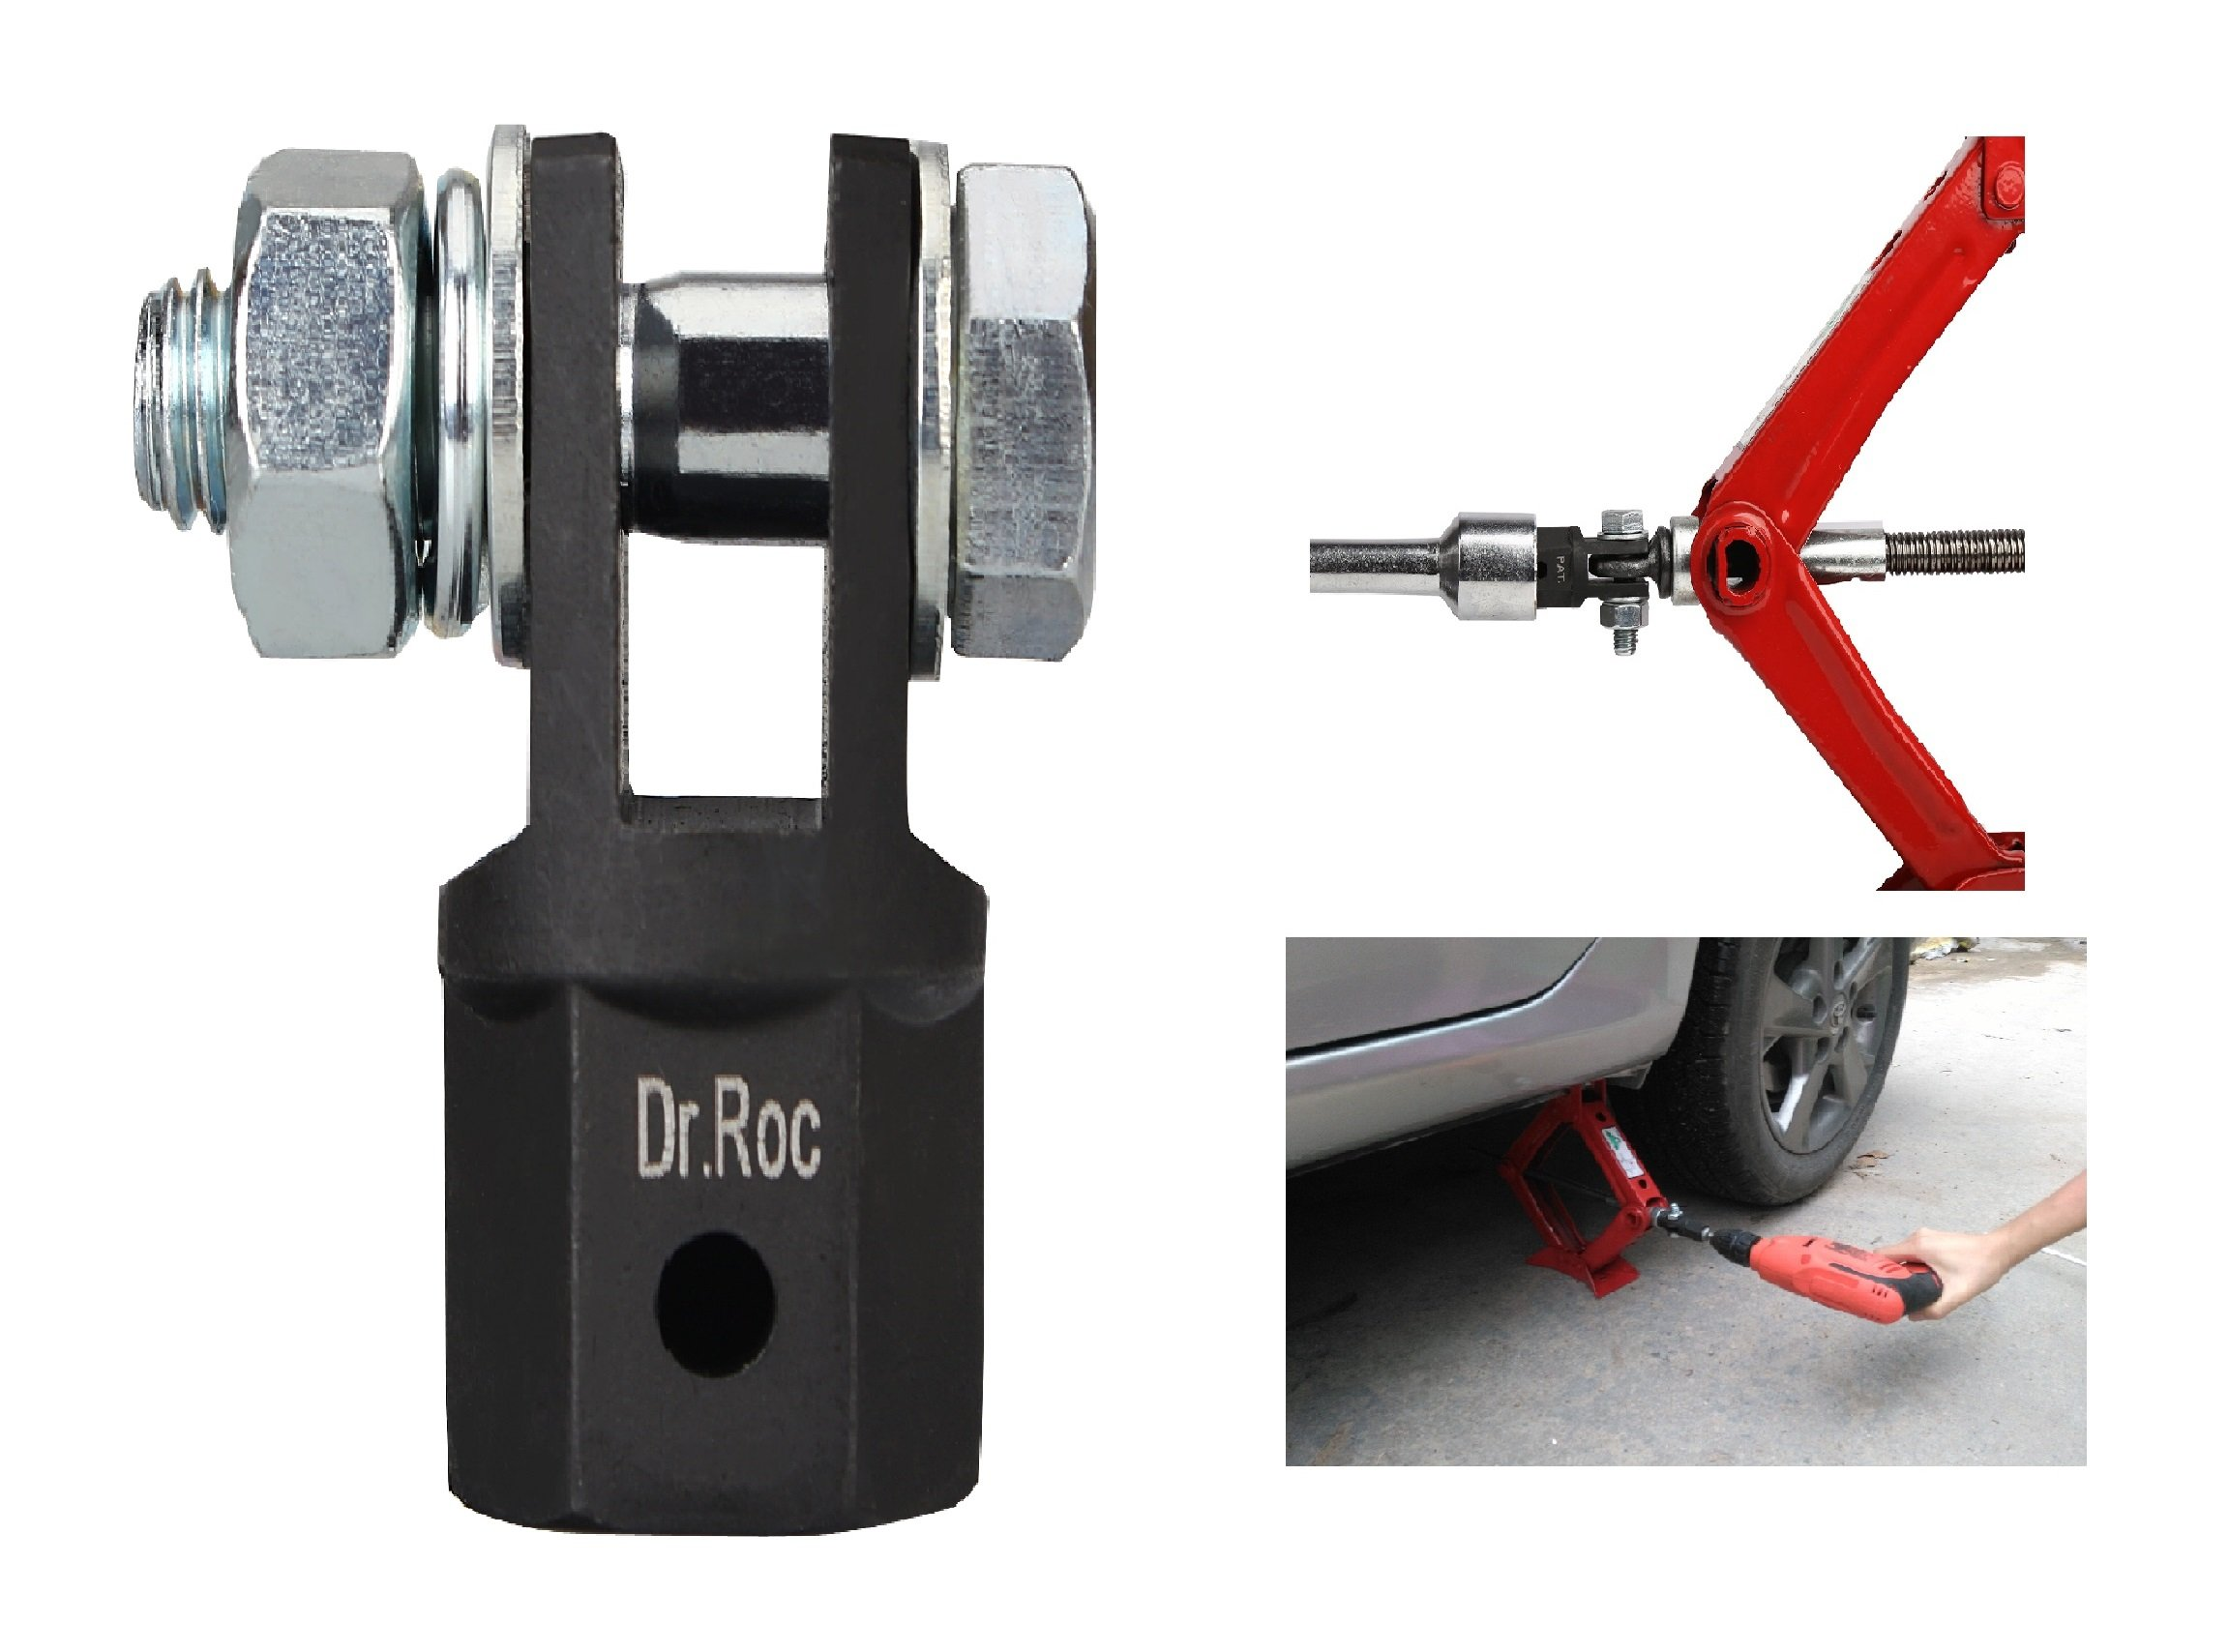 Dr.Roc 1/2'' Scissor Jack Adapter For Use With Drill/Wrench/Tire Iron To Accelerate